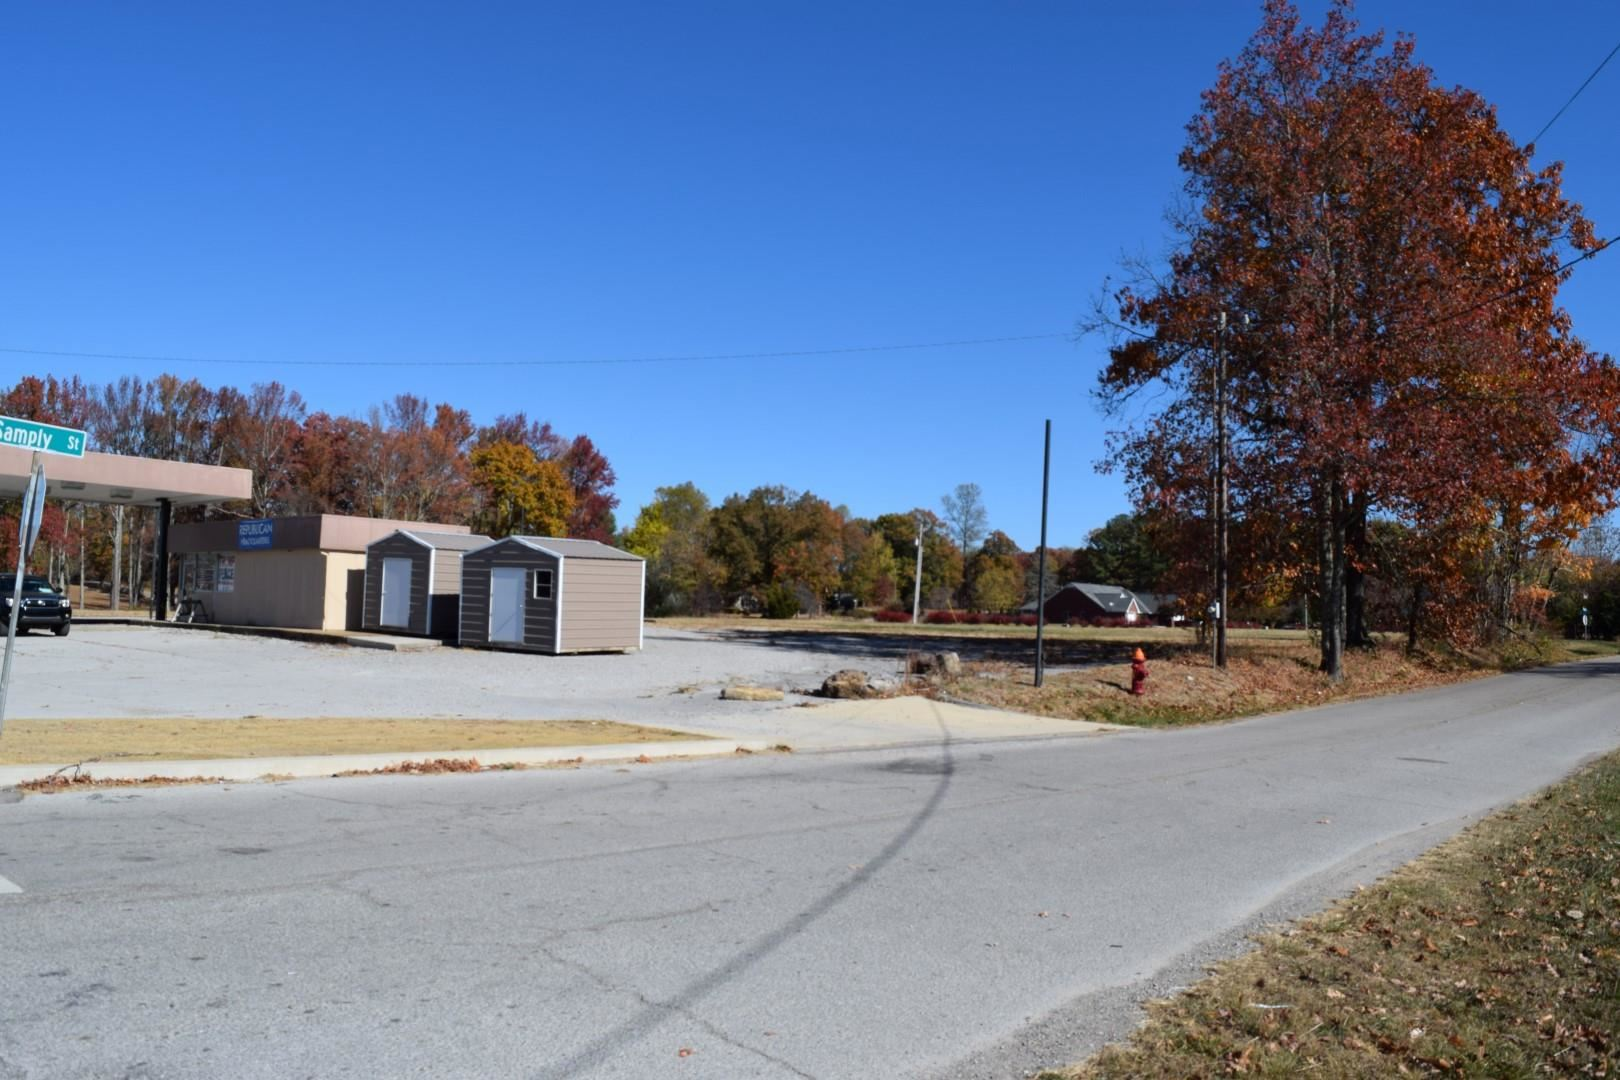 Photo of 130 Dixie Lee Ave, Monteagle, TN 37356 (MLS # 1785736)